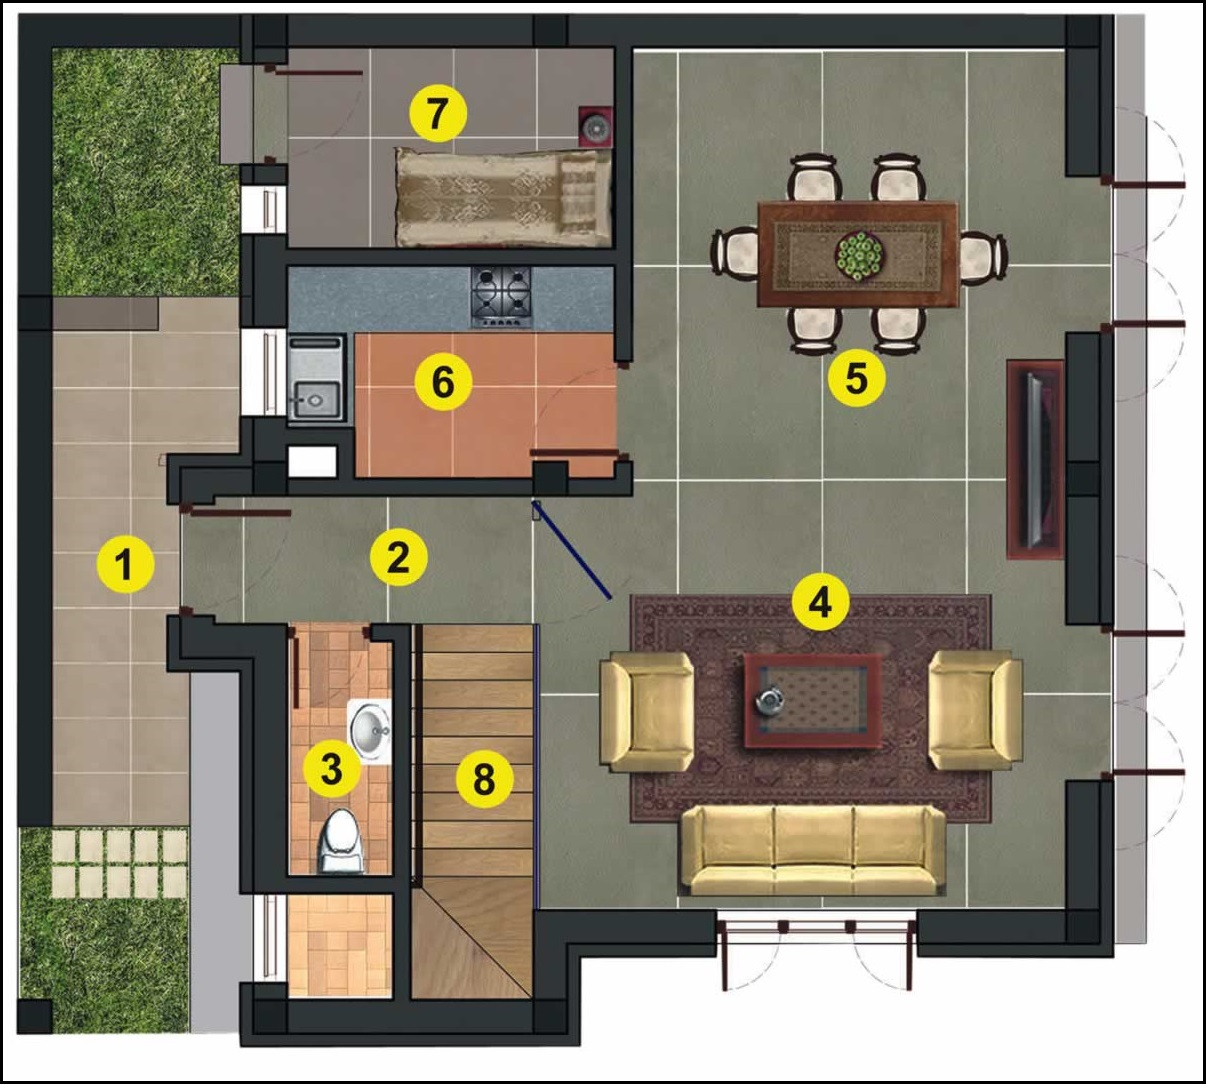 2 Bedroom House Designs Photographs Bungalow Plans Floor Plan With